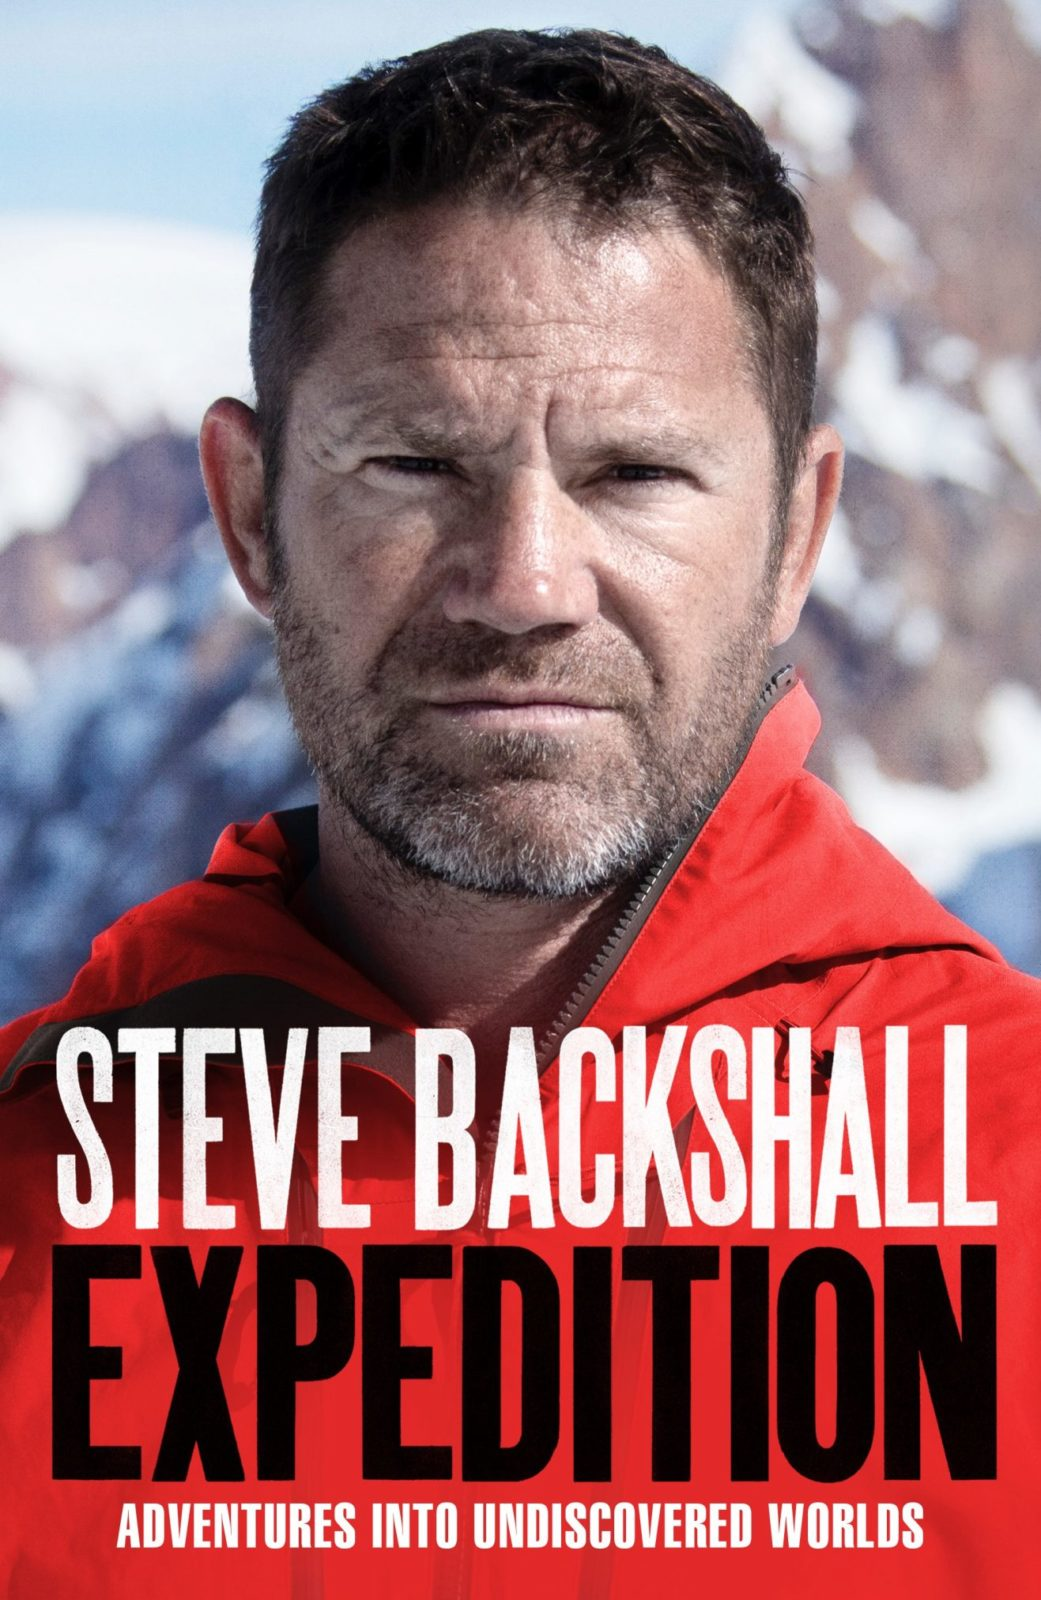 GO Diving Show - Pre-order signed copies of books from Steve Backshall and Miranda Krestovnikoff 3